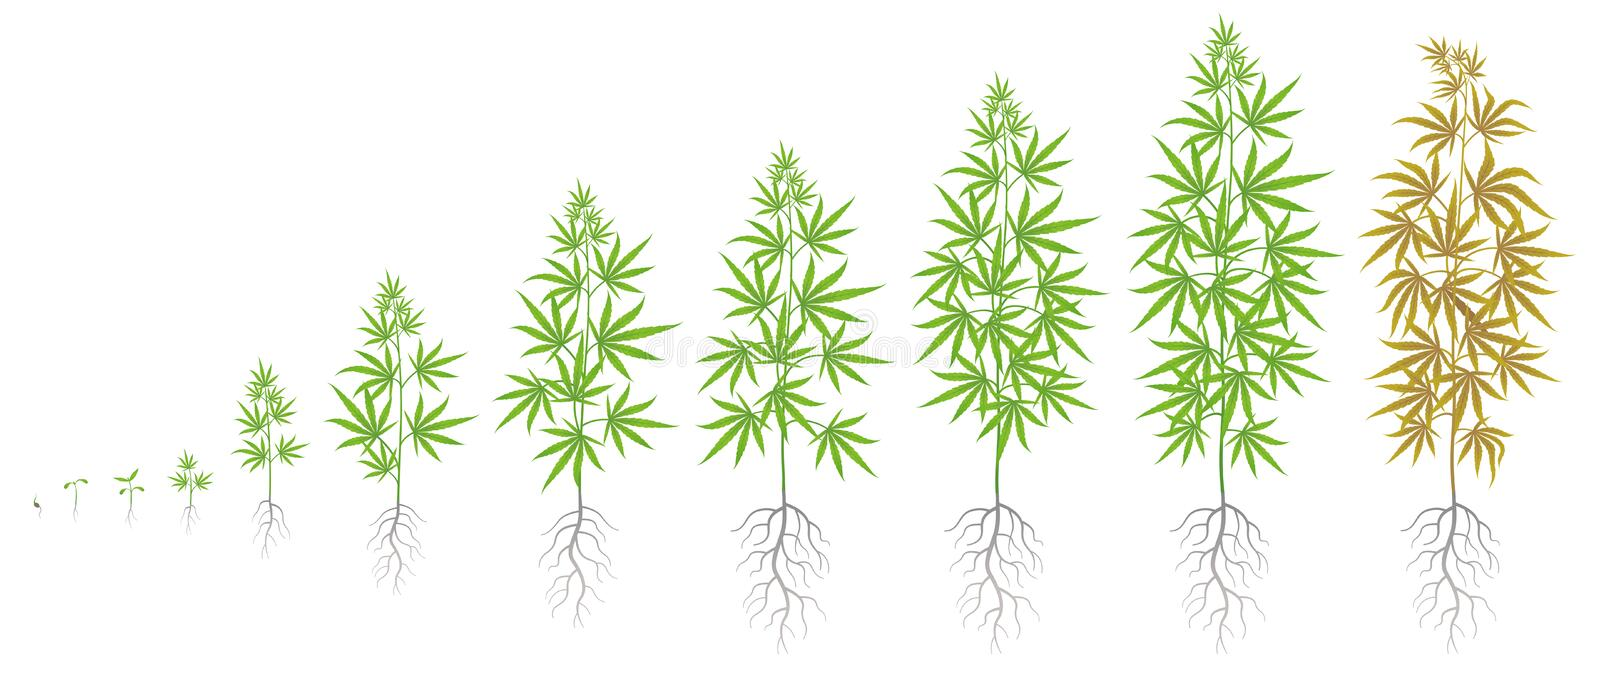 The Growth Cycle of hemp plant. Marijuana phases set. Cannabis sativa ripening period. The life stages. Weed Growing. Isolated infographic vector illustration stock illustration